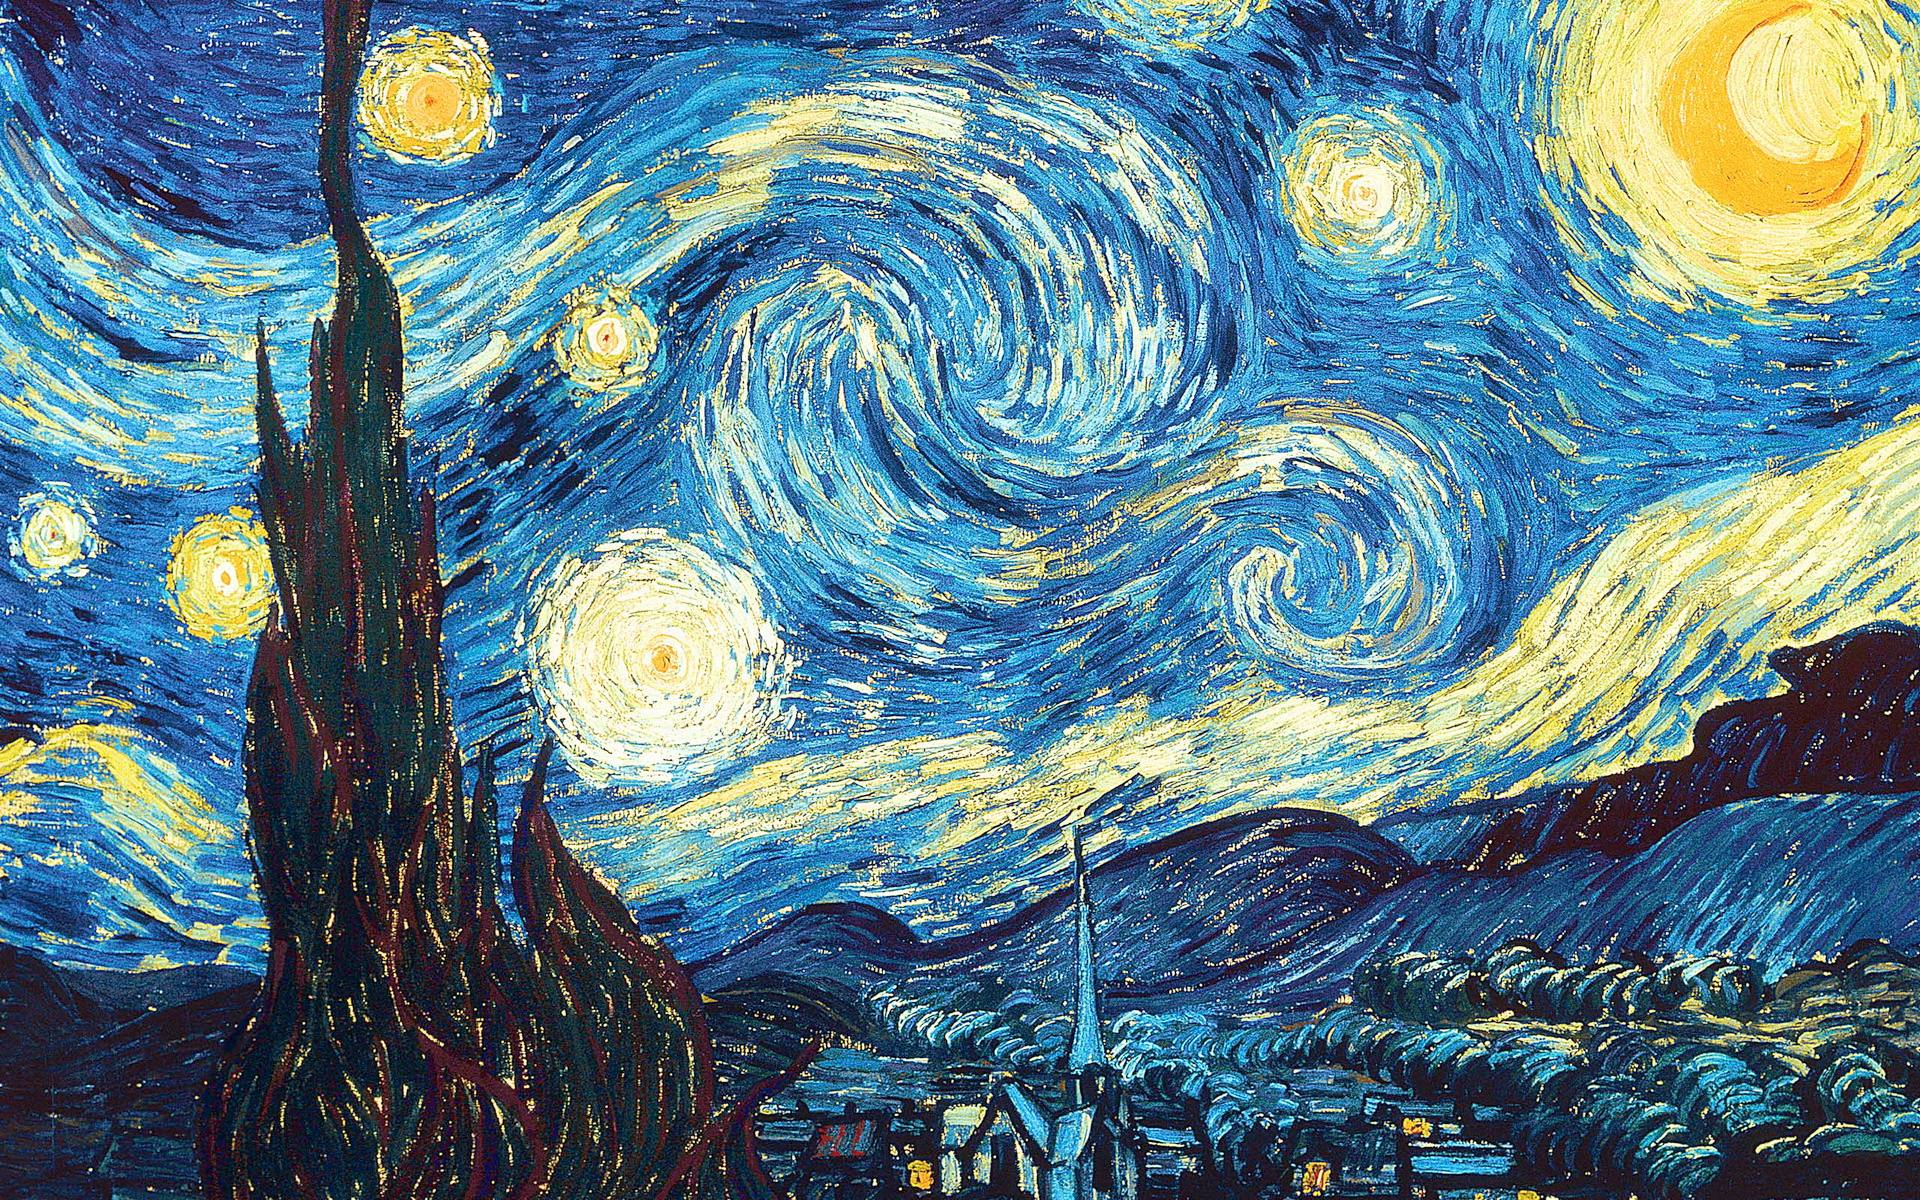 The Starry Night - Vincent van Gogh 1889